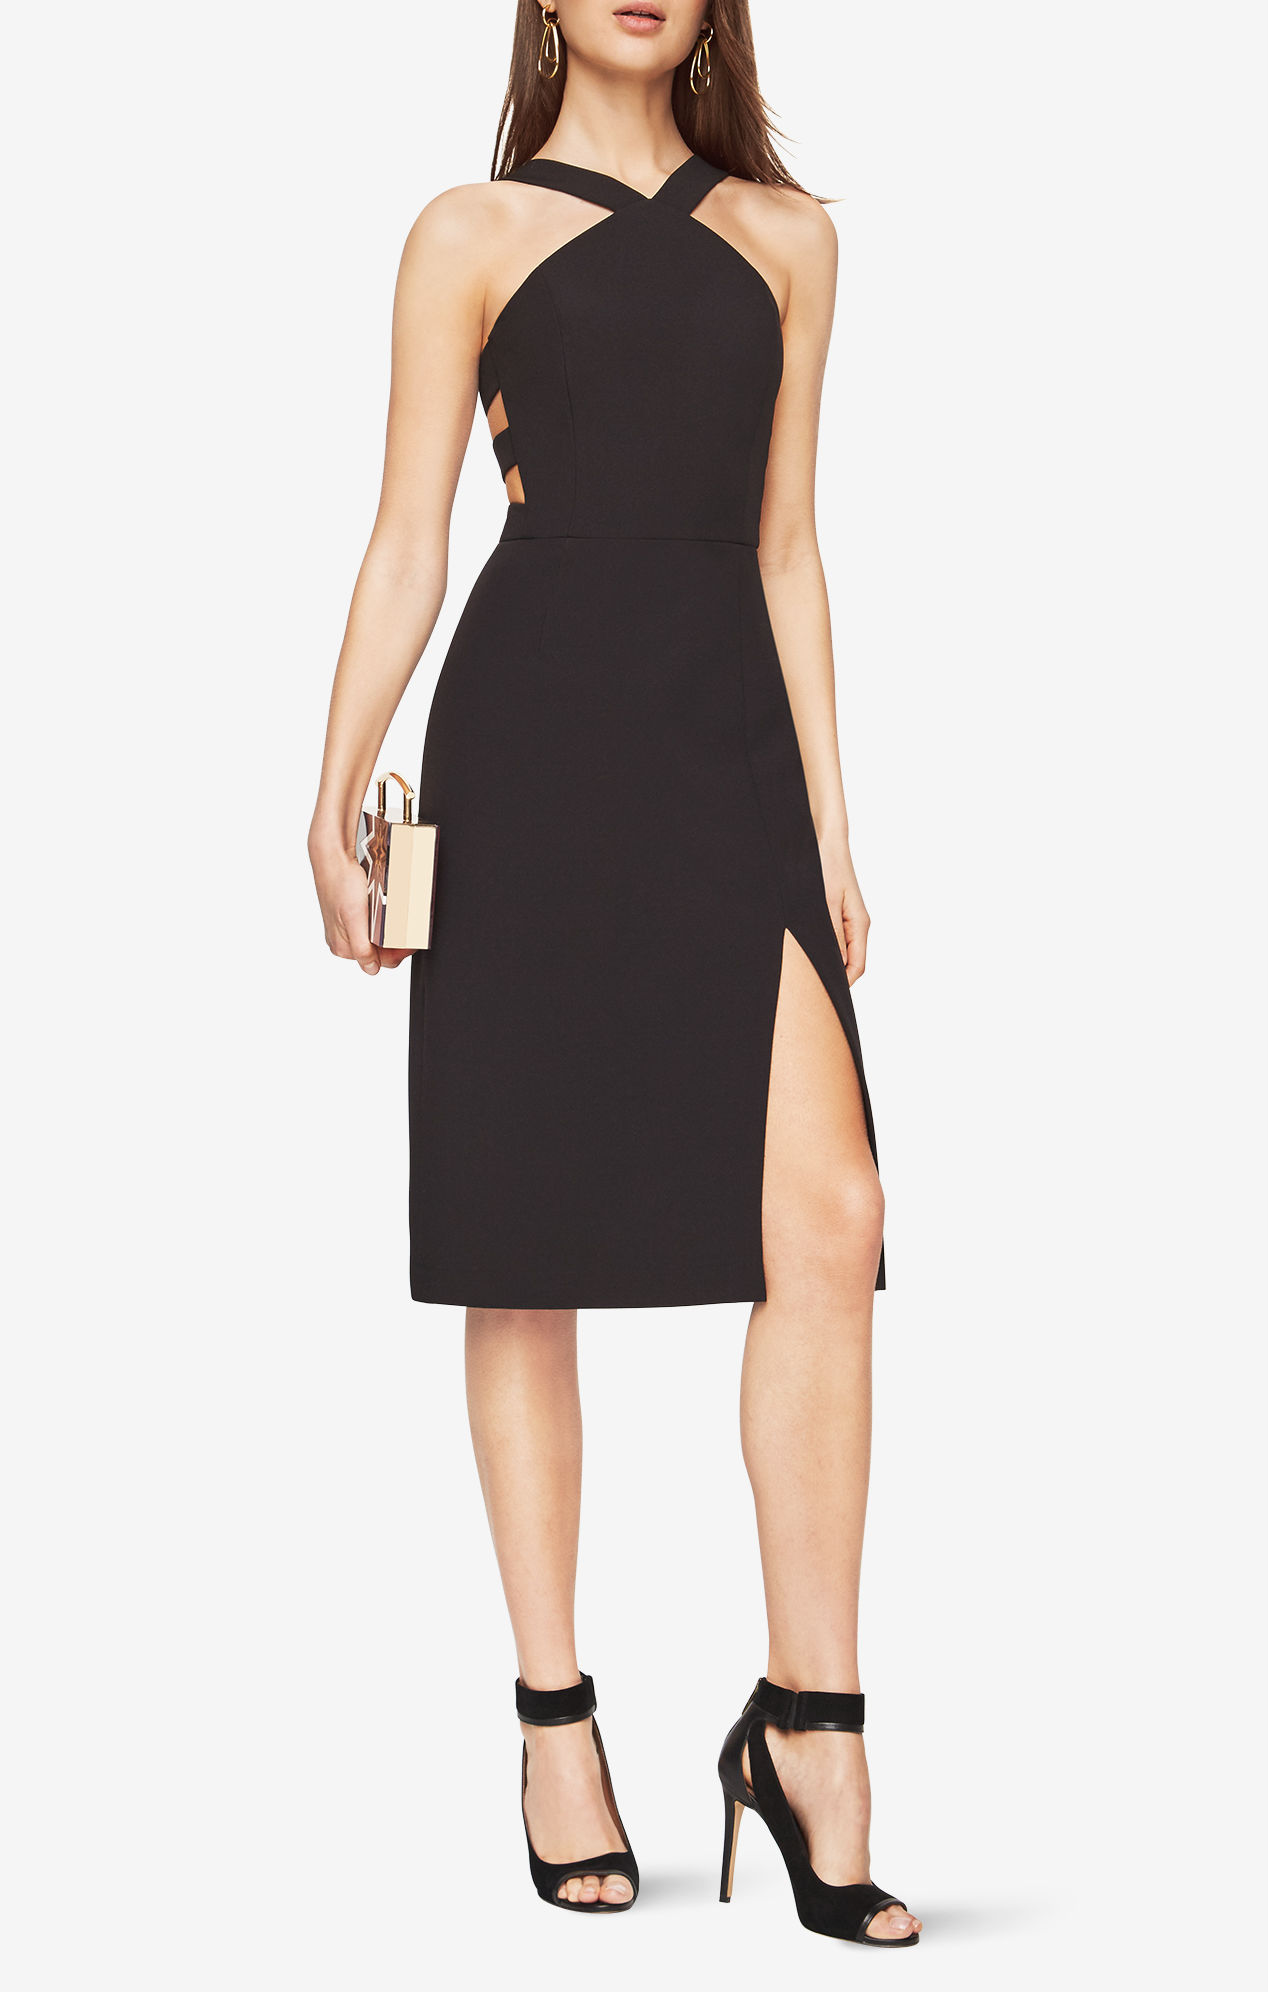 Oct 30, · Melania Trump sure does love her LBDs! The first lady stepped out en route to the Trump International Hotel over the weekend in her go-to uniform for a night out on the town -- a form-fitting LBD.